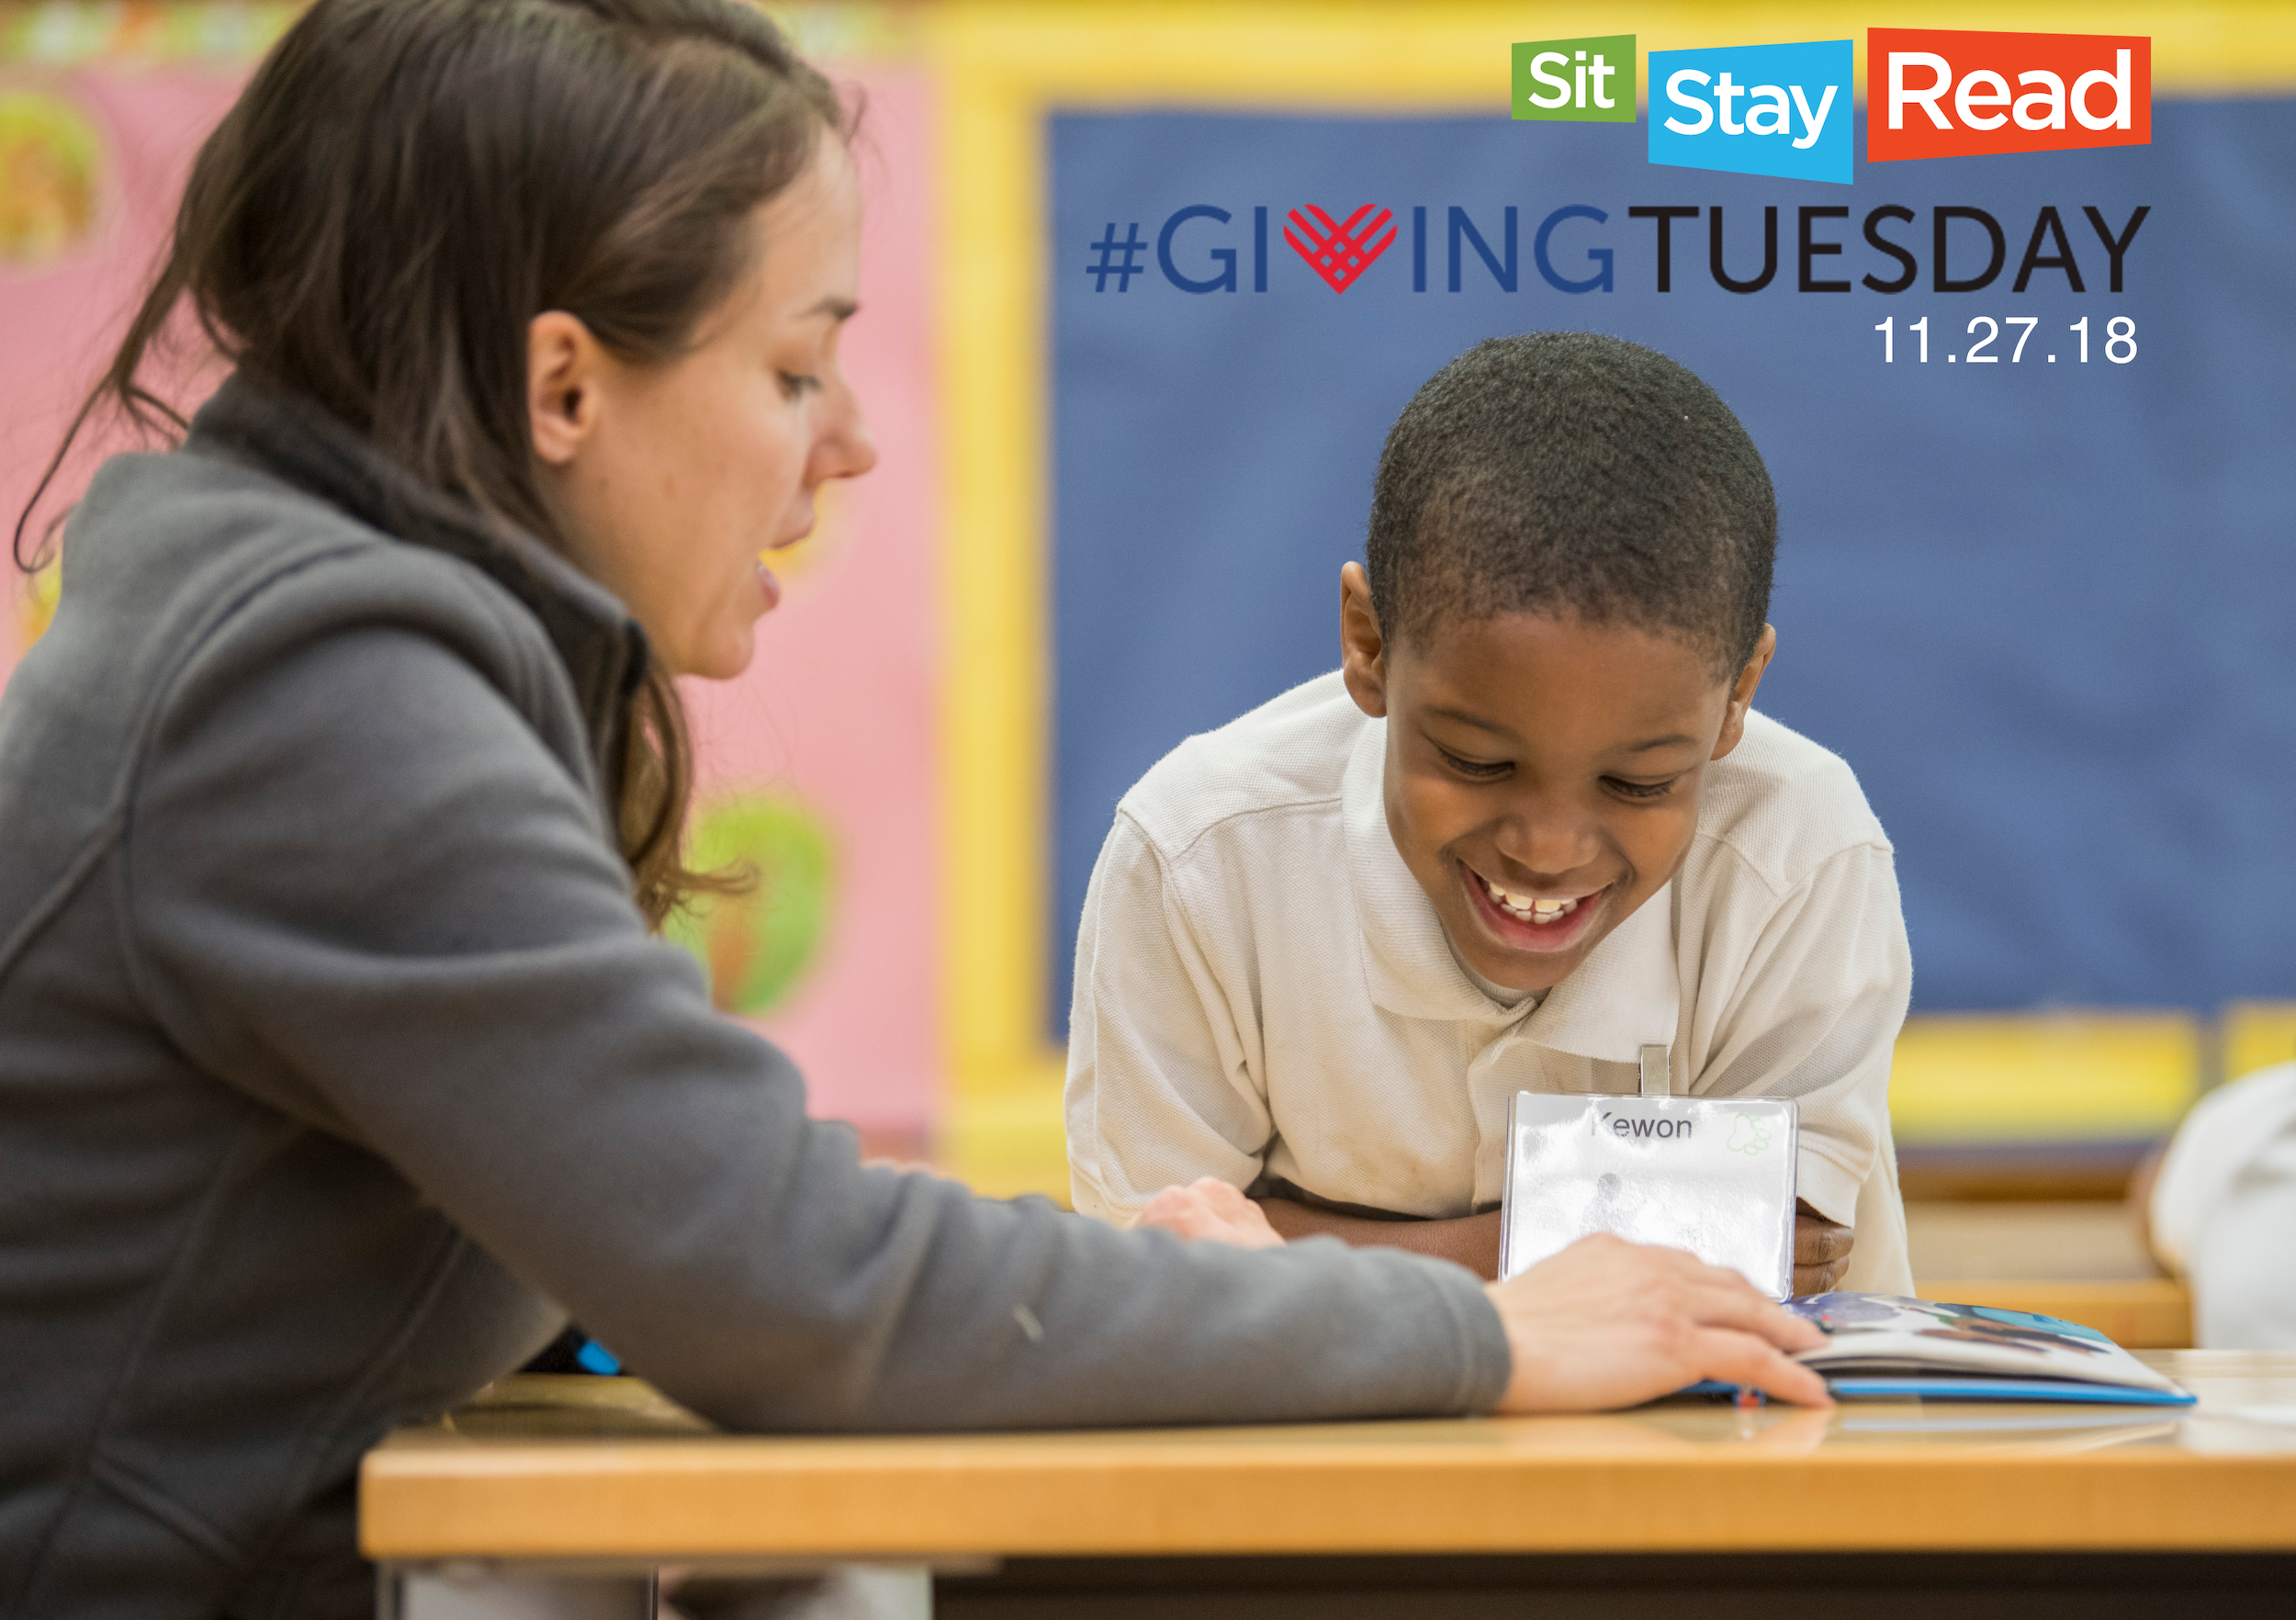 #GIVINGTUESDAY GOAL - Last year's #GivingTuesday was our largest yet, reaching over $2,600 in donations!This year, we hope to raise $3,500, which could supply Summer Reading Fun Packs to over 75 students!